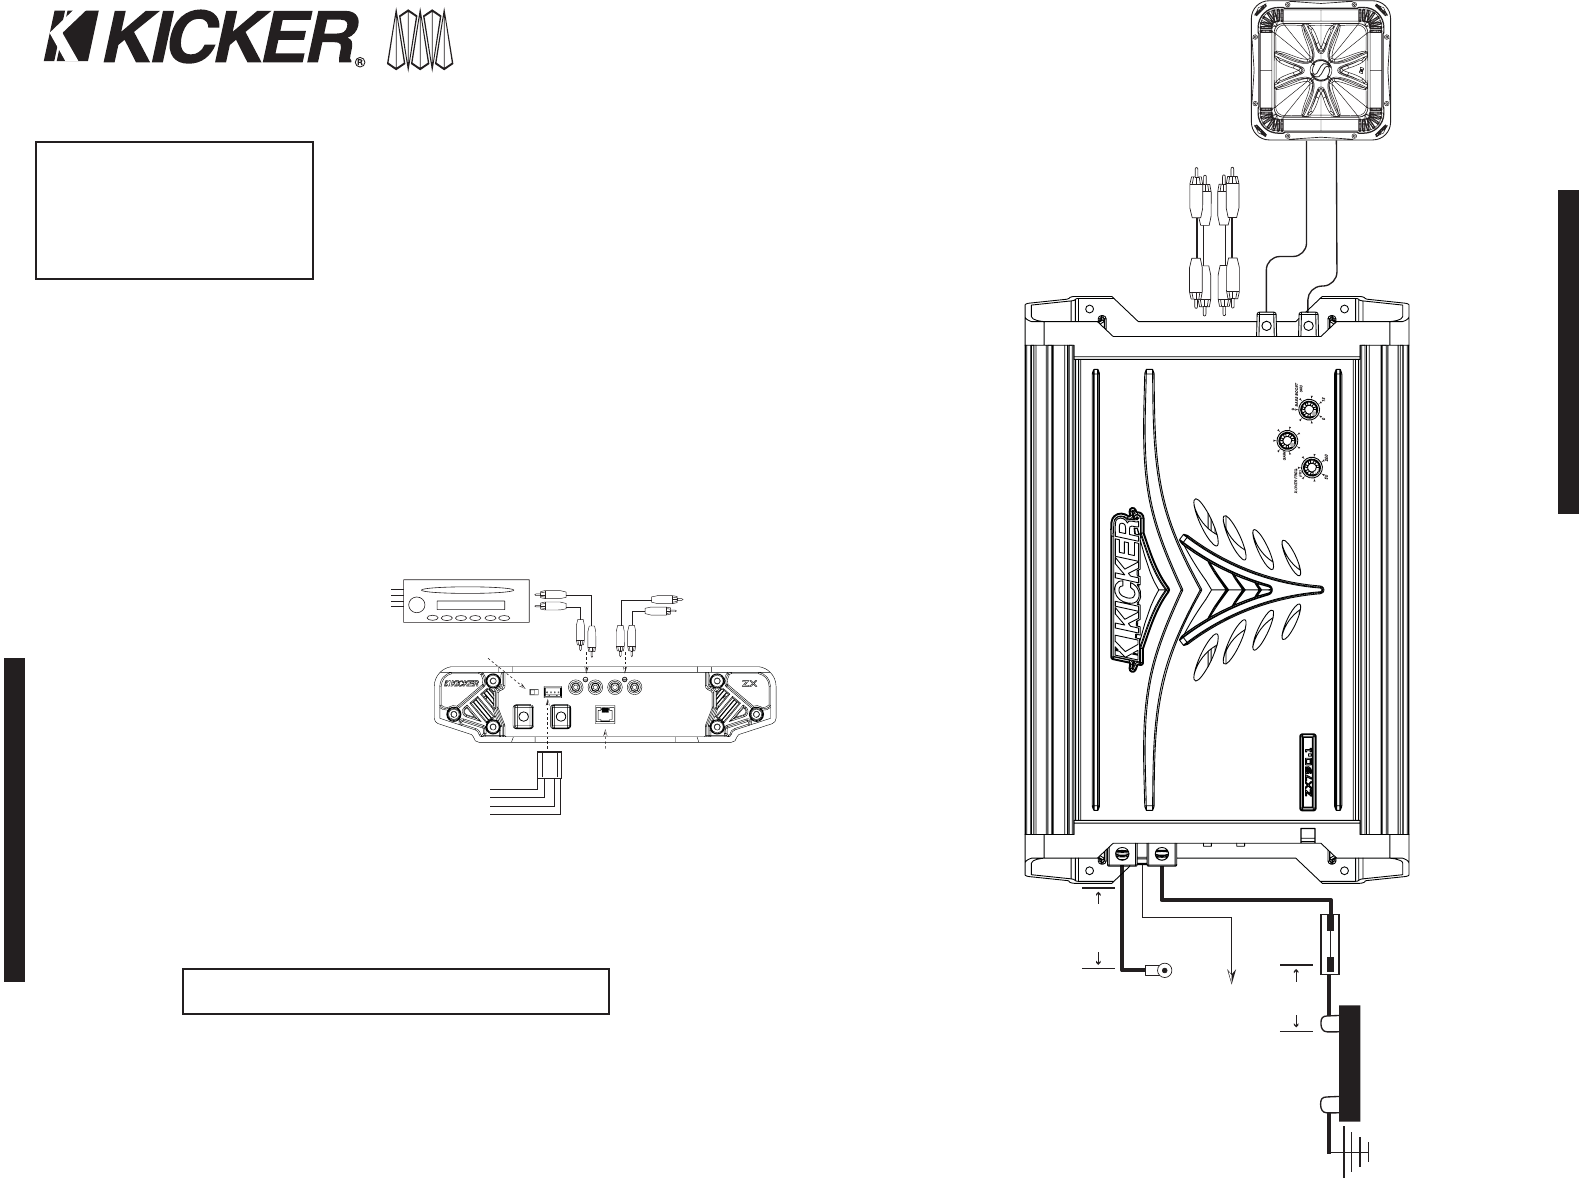 52b01e54 9f83 4566 bf8f 2f821065ce6f bg2 page 2 of kicker stereo amplifier zx400 1 user guide Kicker Zx400.1 Manual at alyssarenee.co